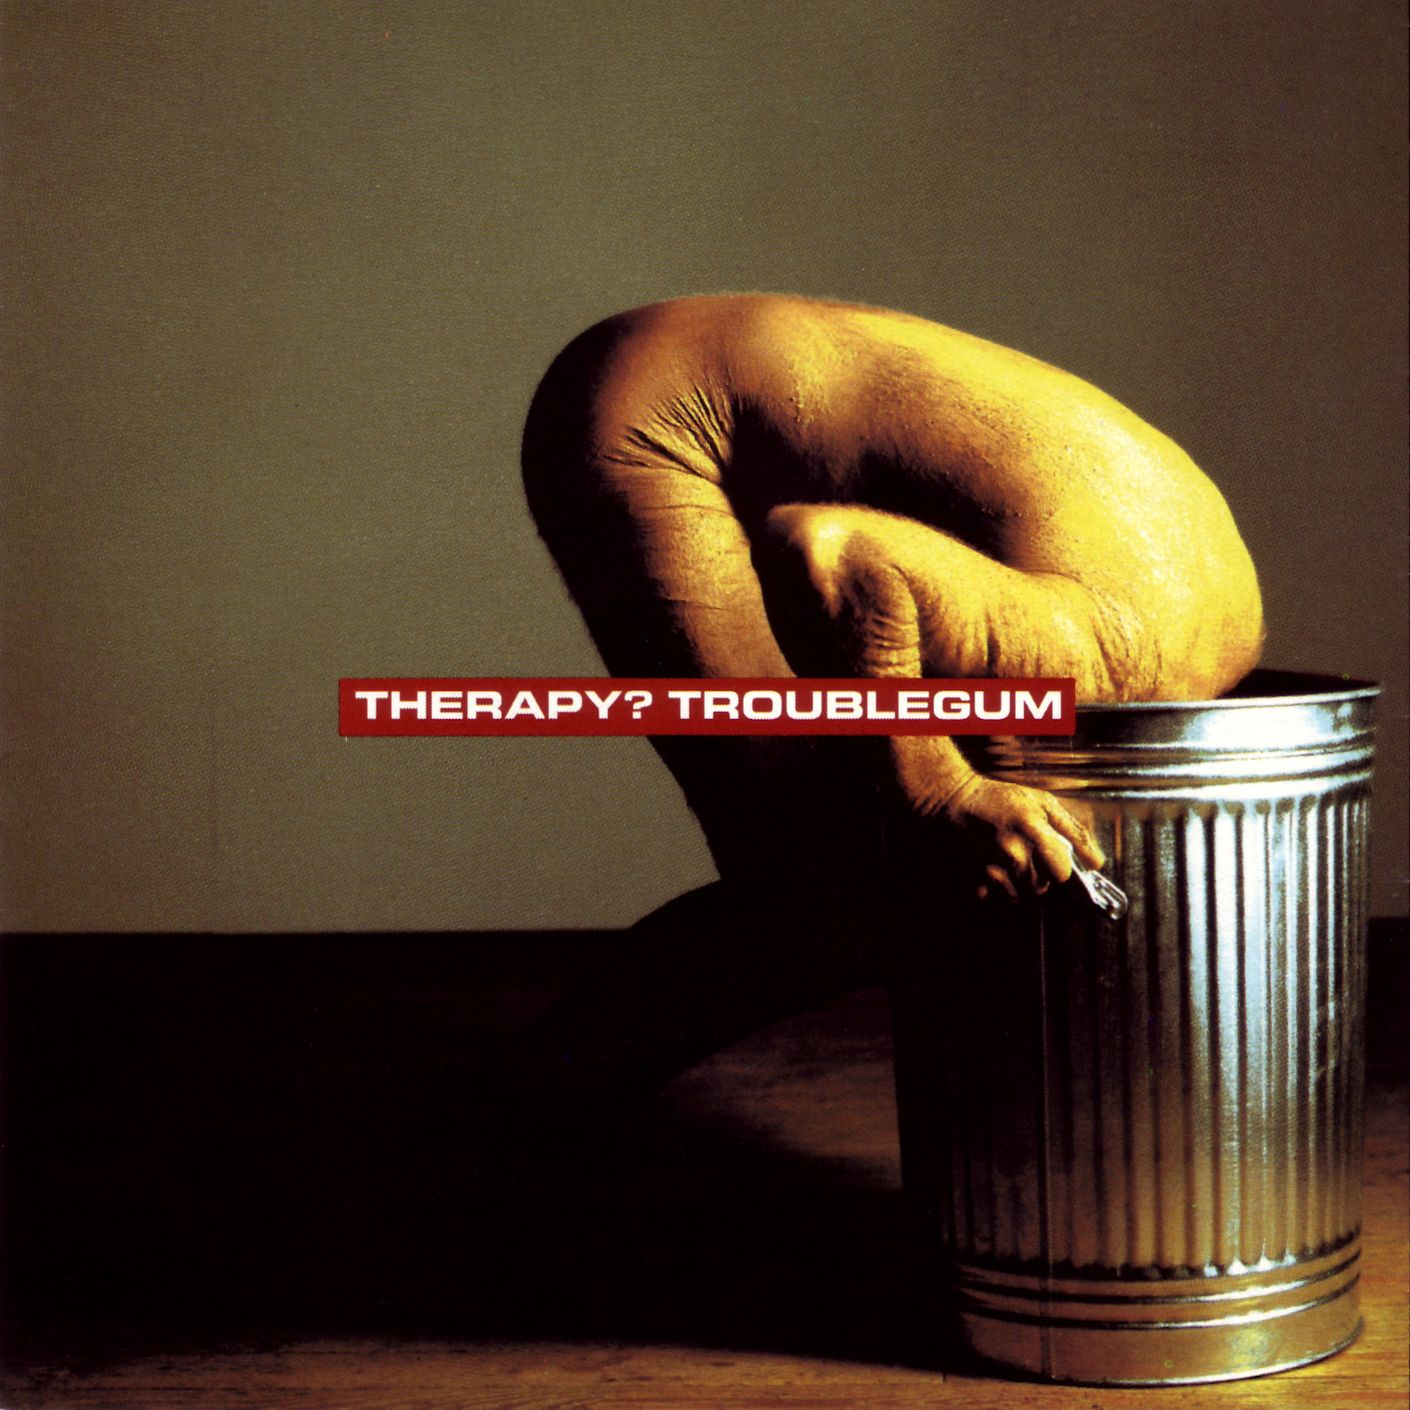 Therapy Troublegum 90s Alt Rock Covers Greatest